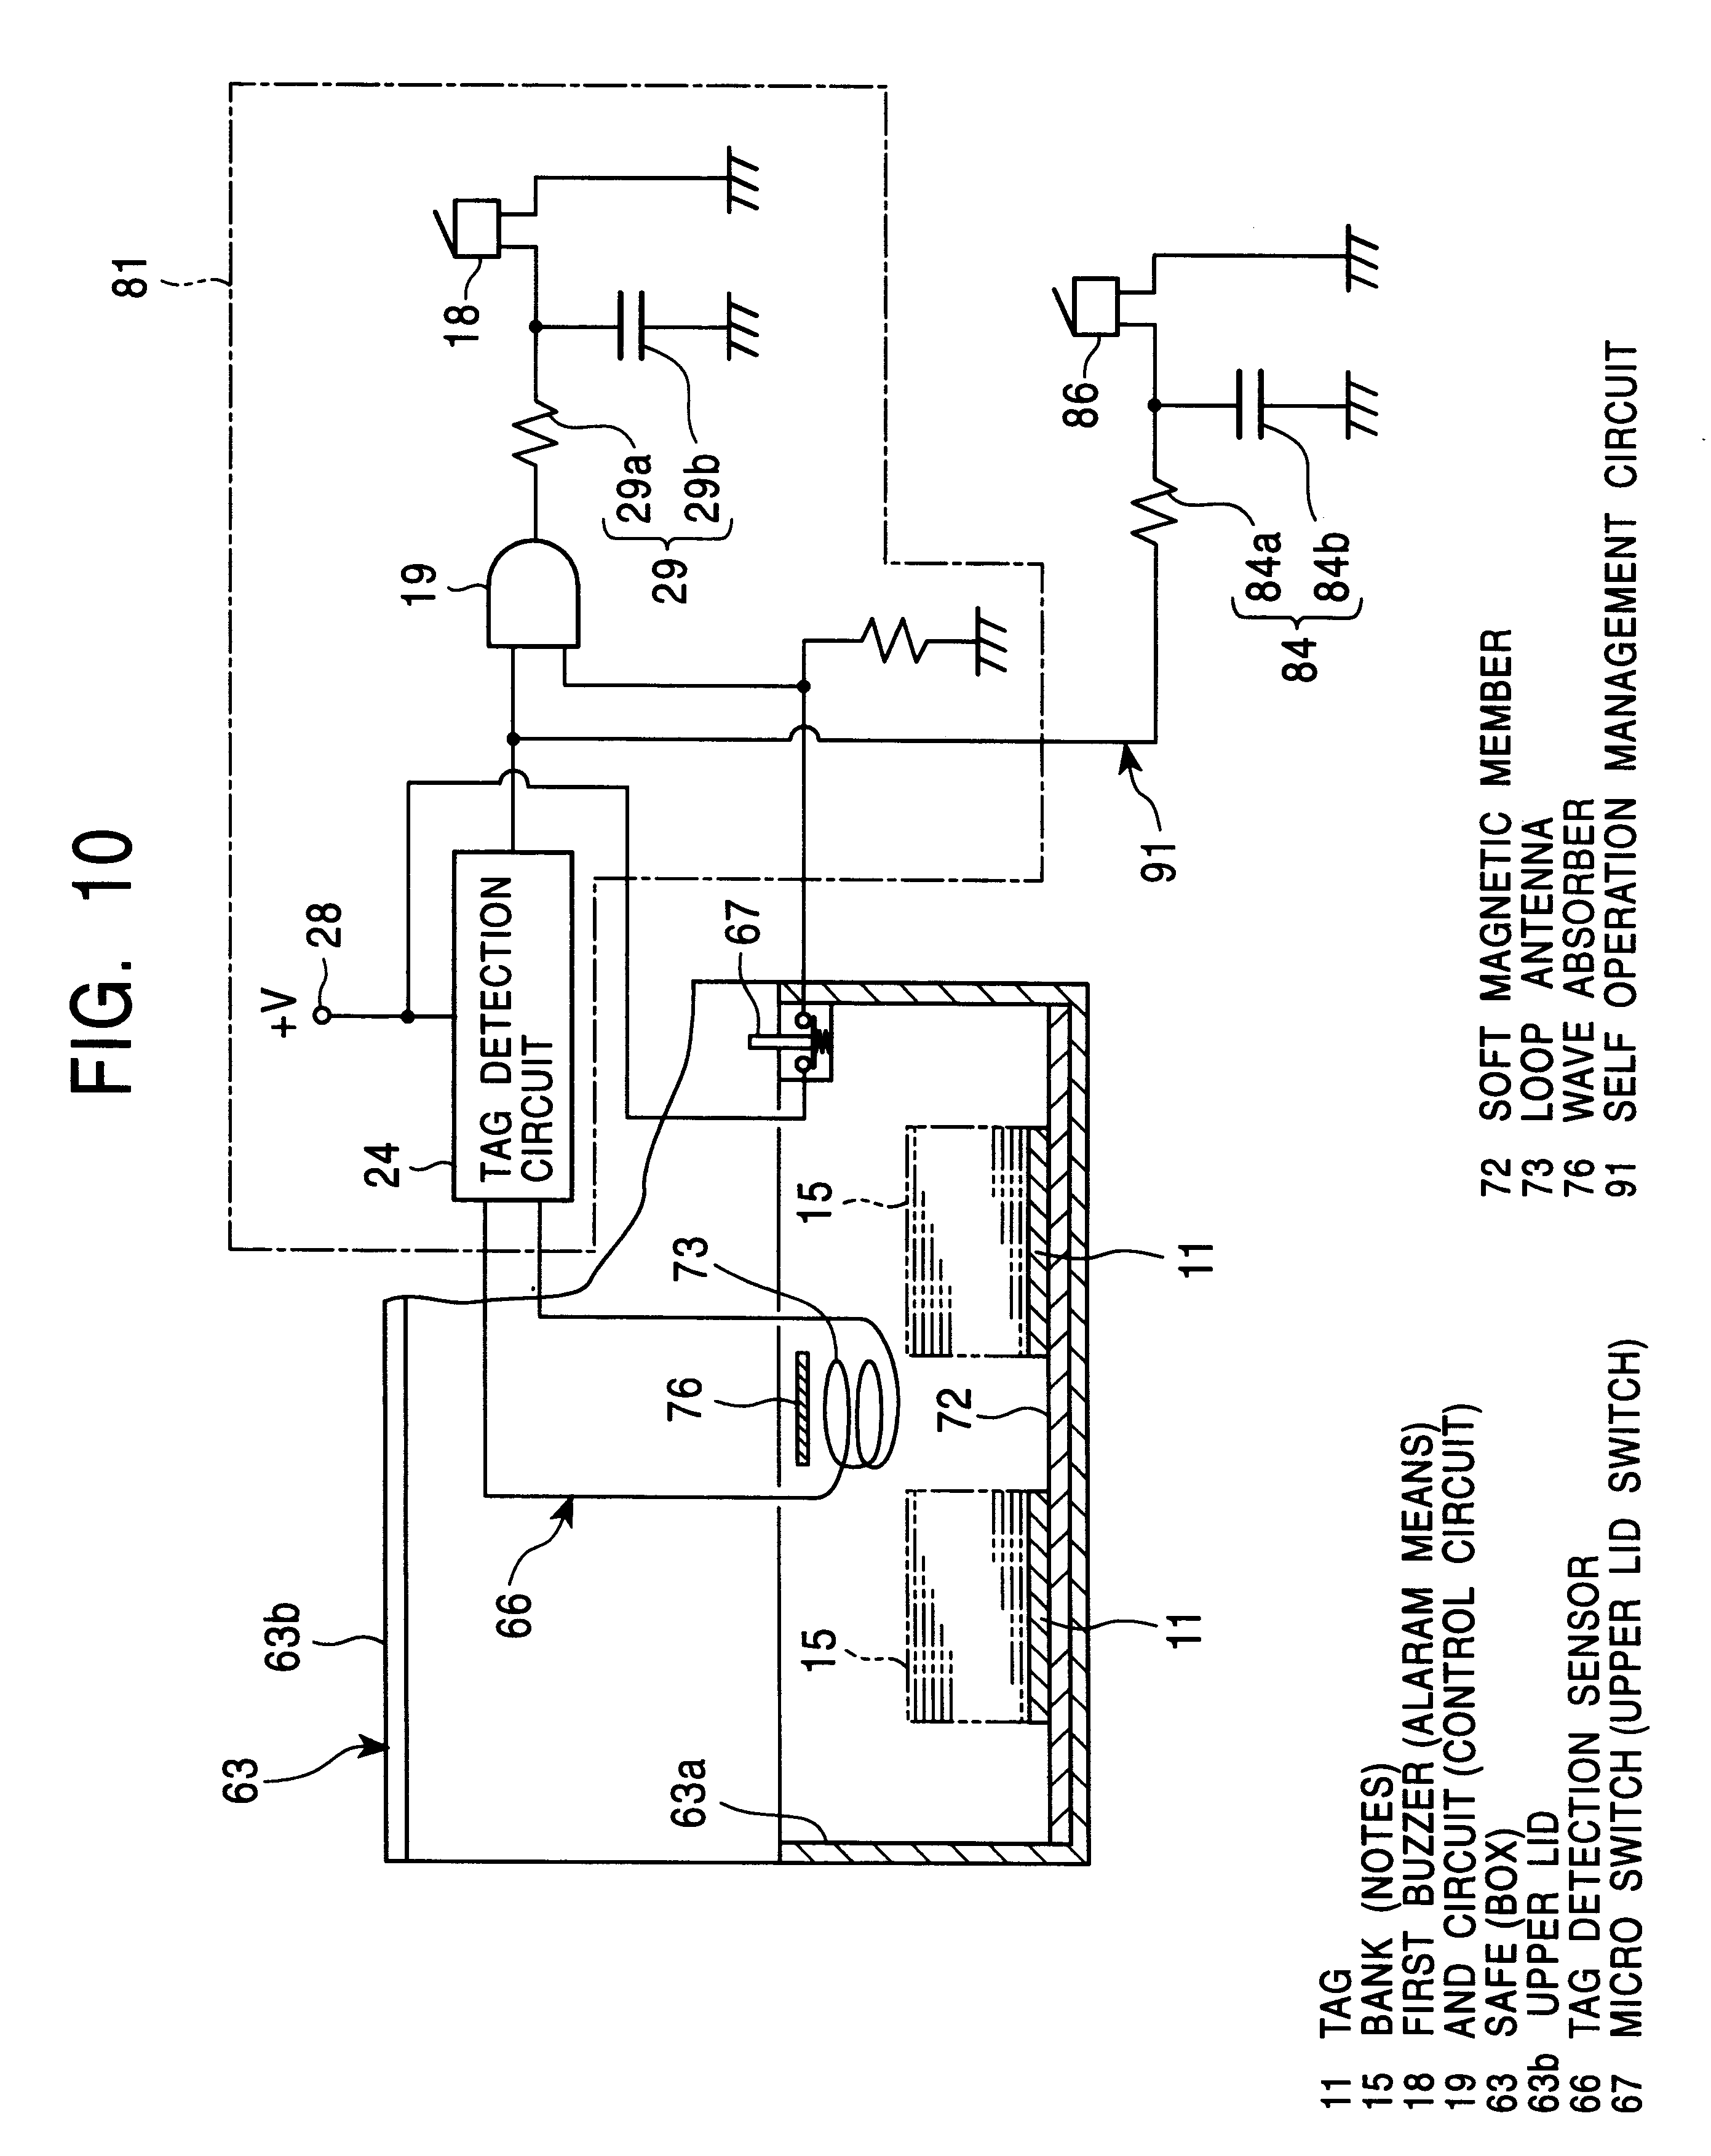 Patent Us6304182 Apparatus For Detecting Theft By A Radio Wave This Is Basic Buzzer Driver Circuit With Resonance Frequncy Drawing